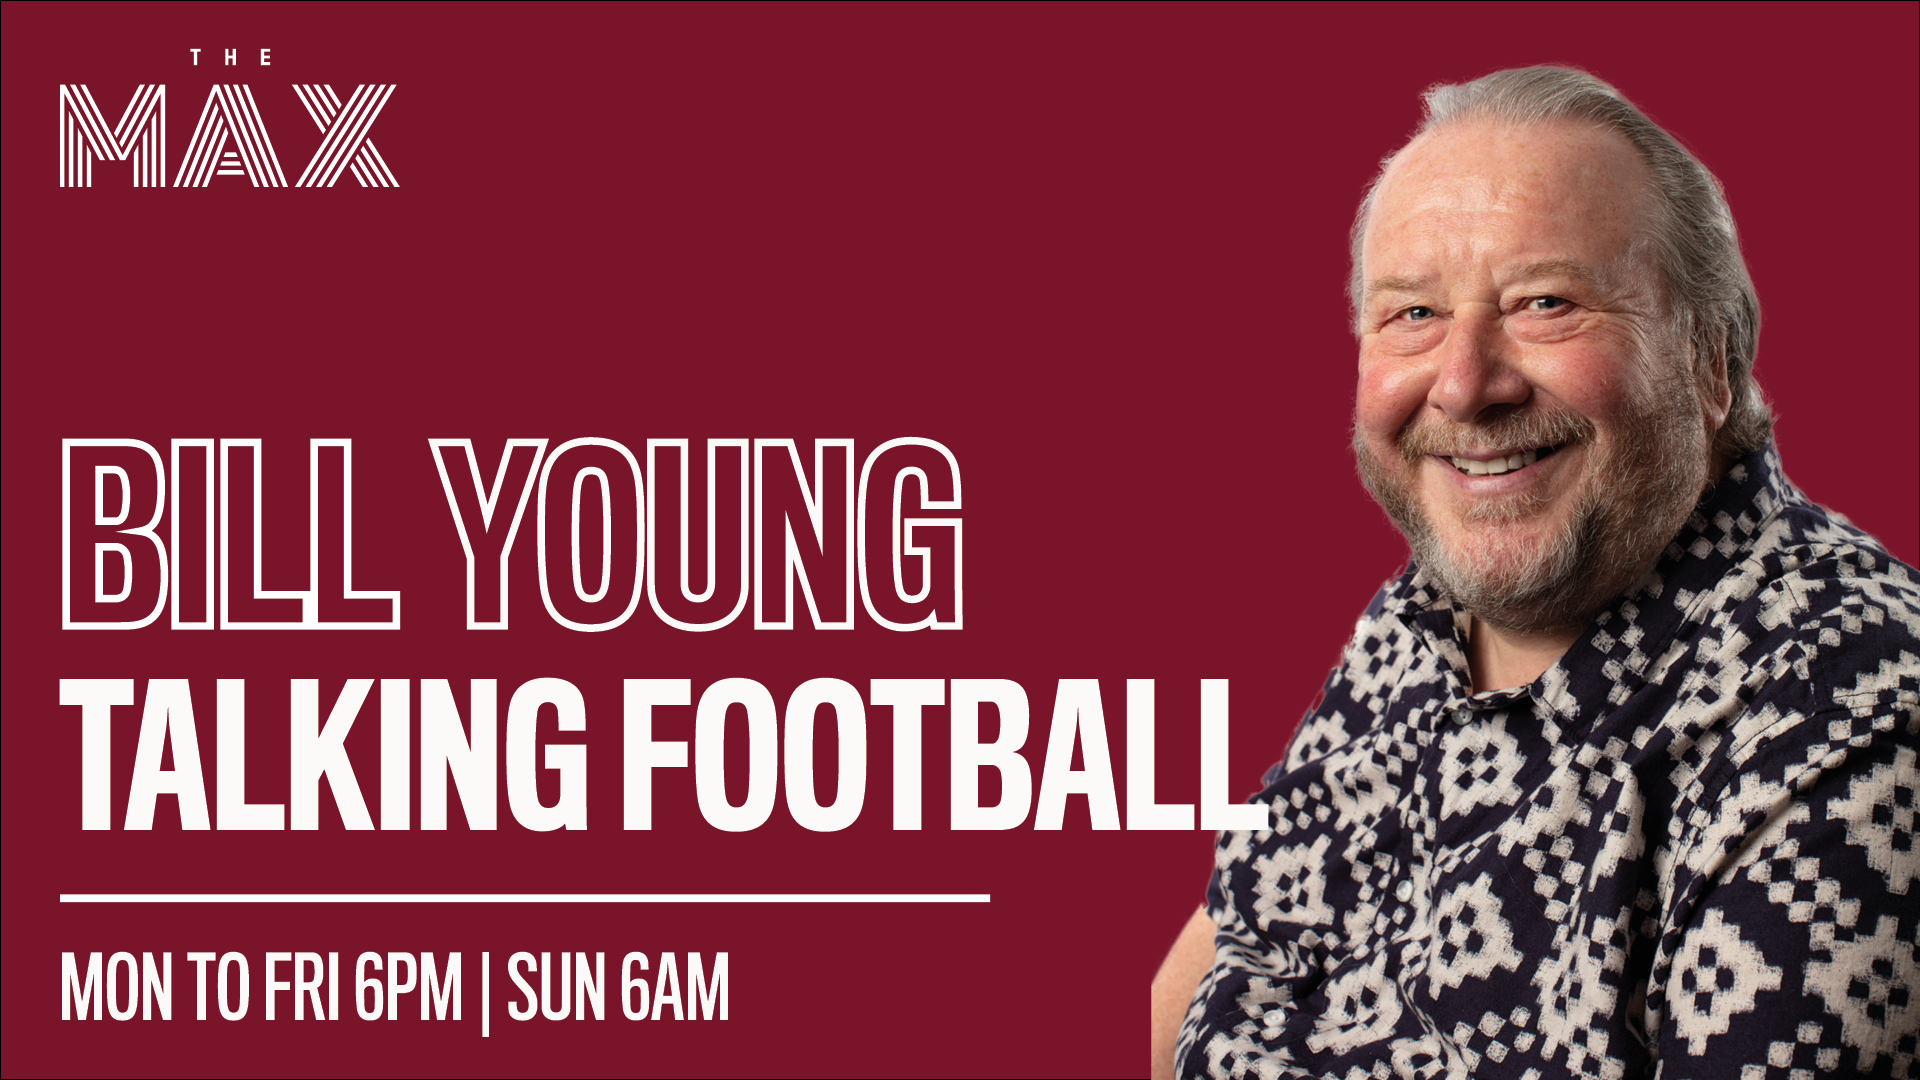 Talking Football with Bill Young - Tuesday 16th March